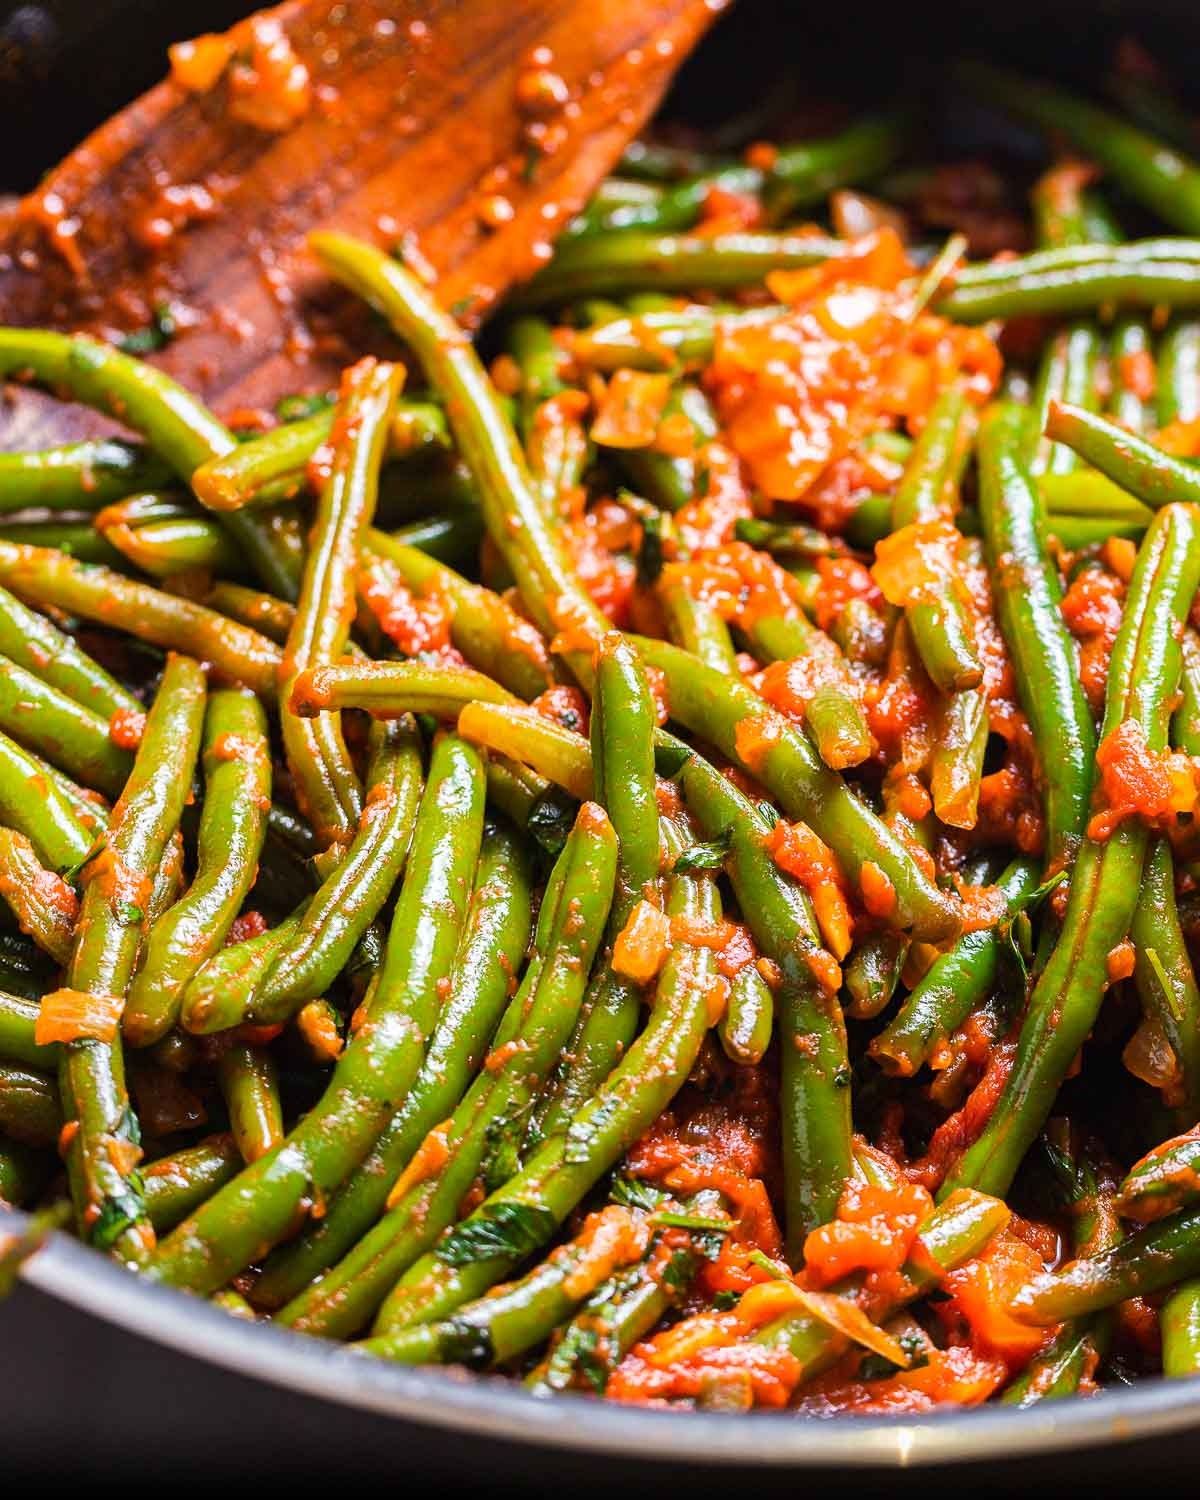 Pan full of green beans with tomato sauce.